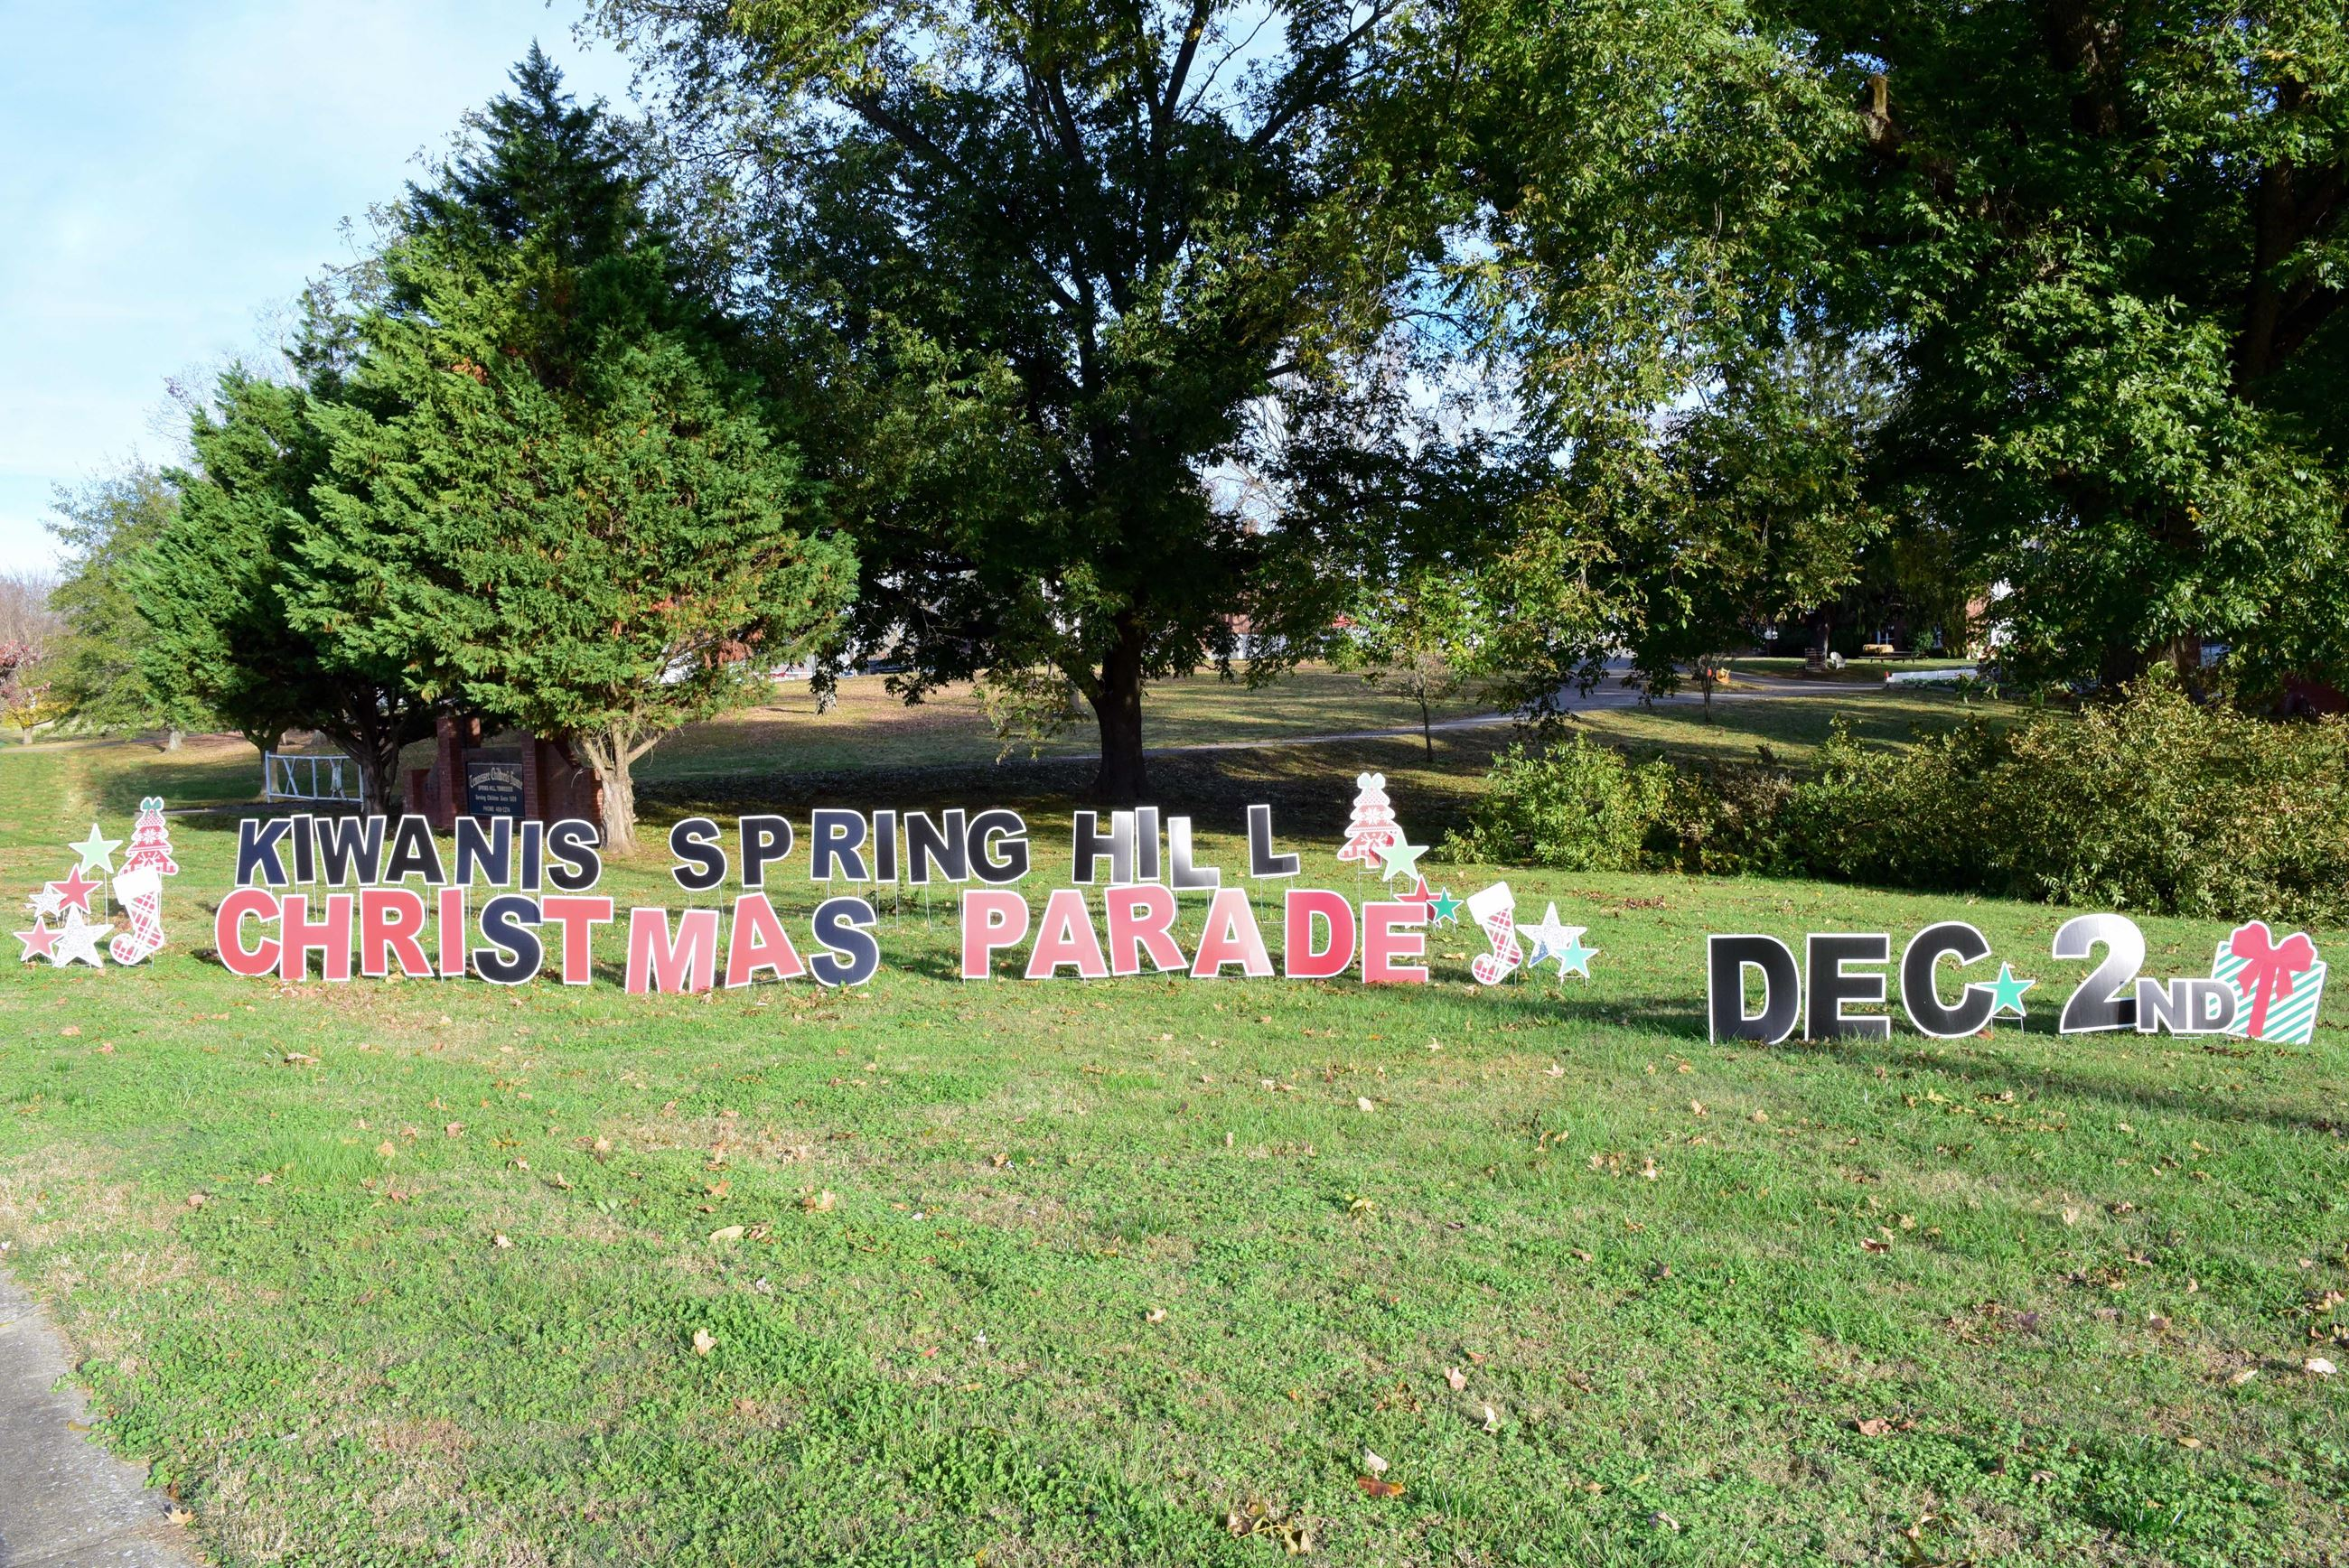 Christmas Parade sign